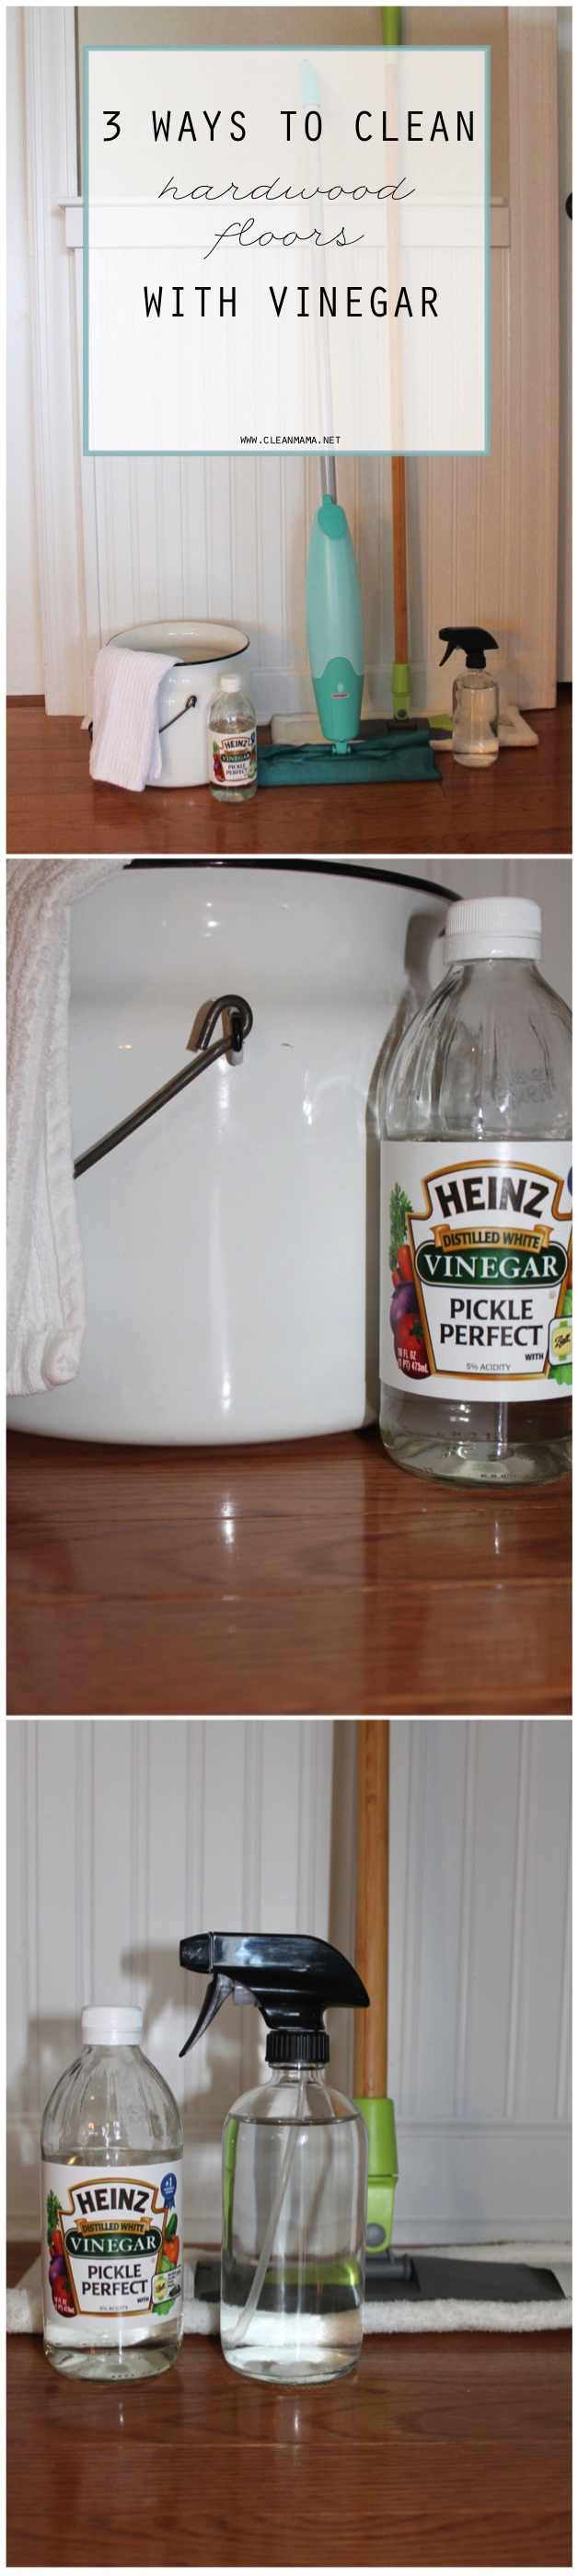 3 Ways To Clean Hardwood Floors With Vinegar Cleaning